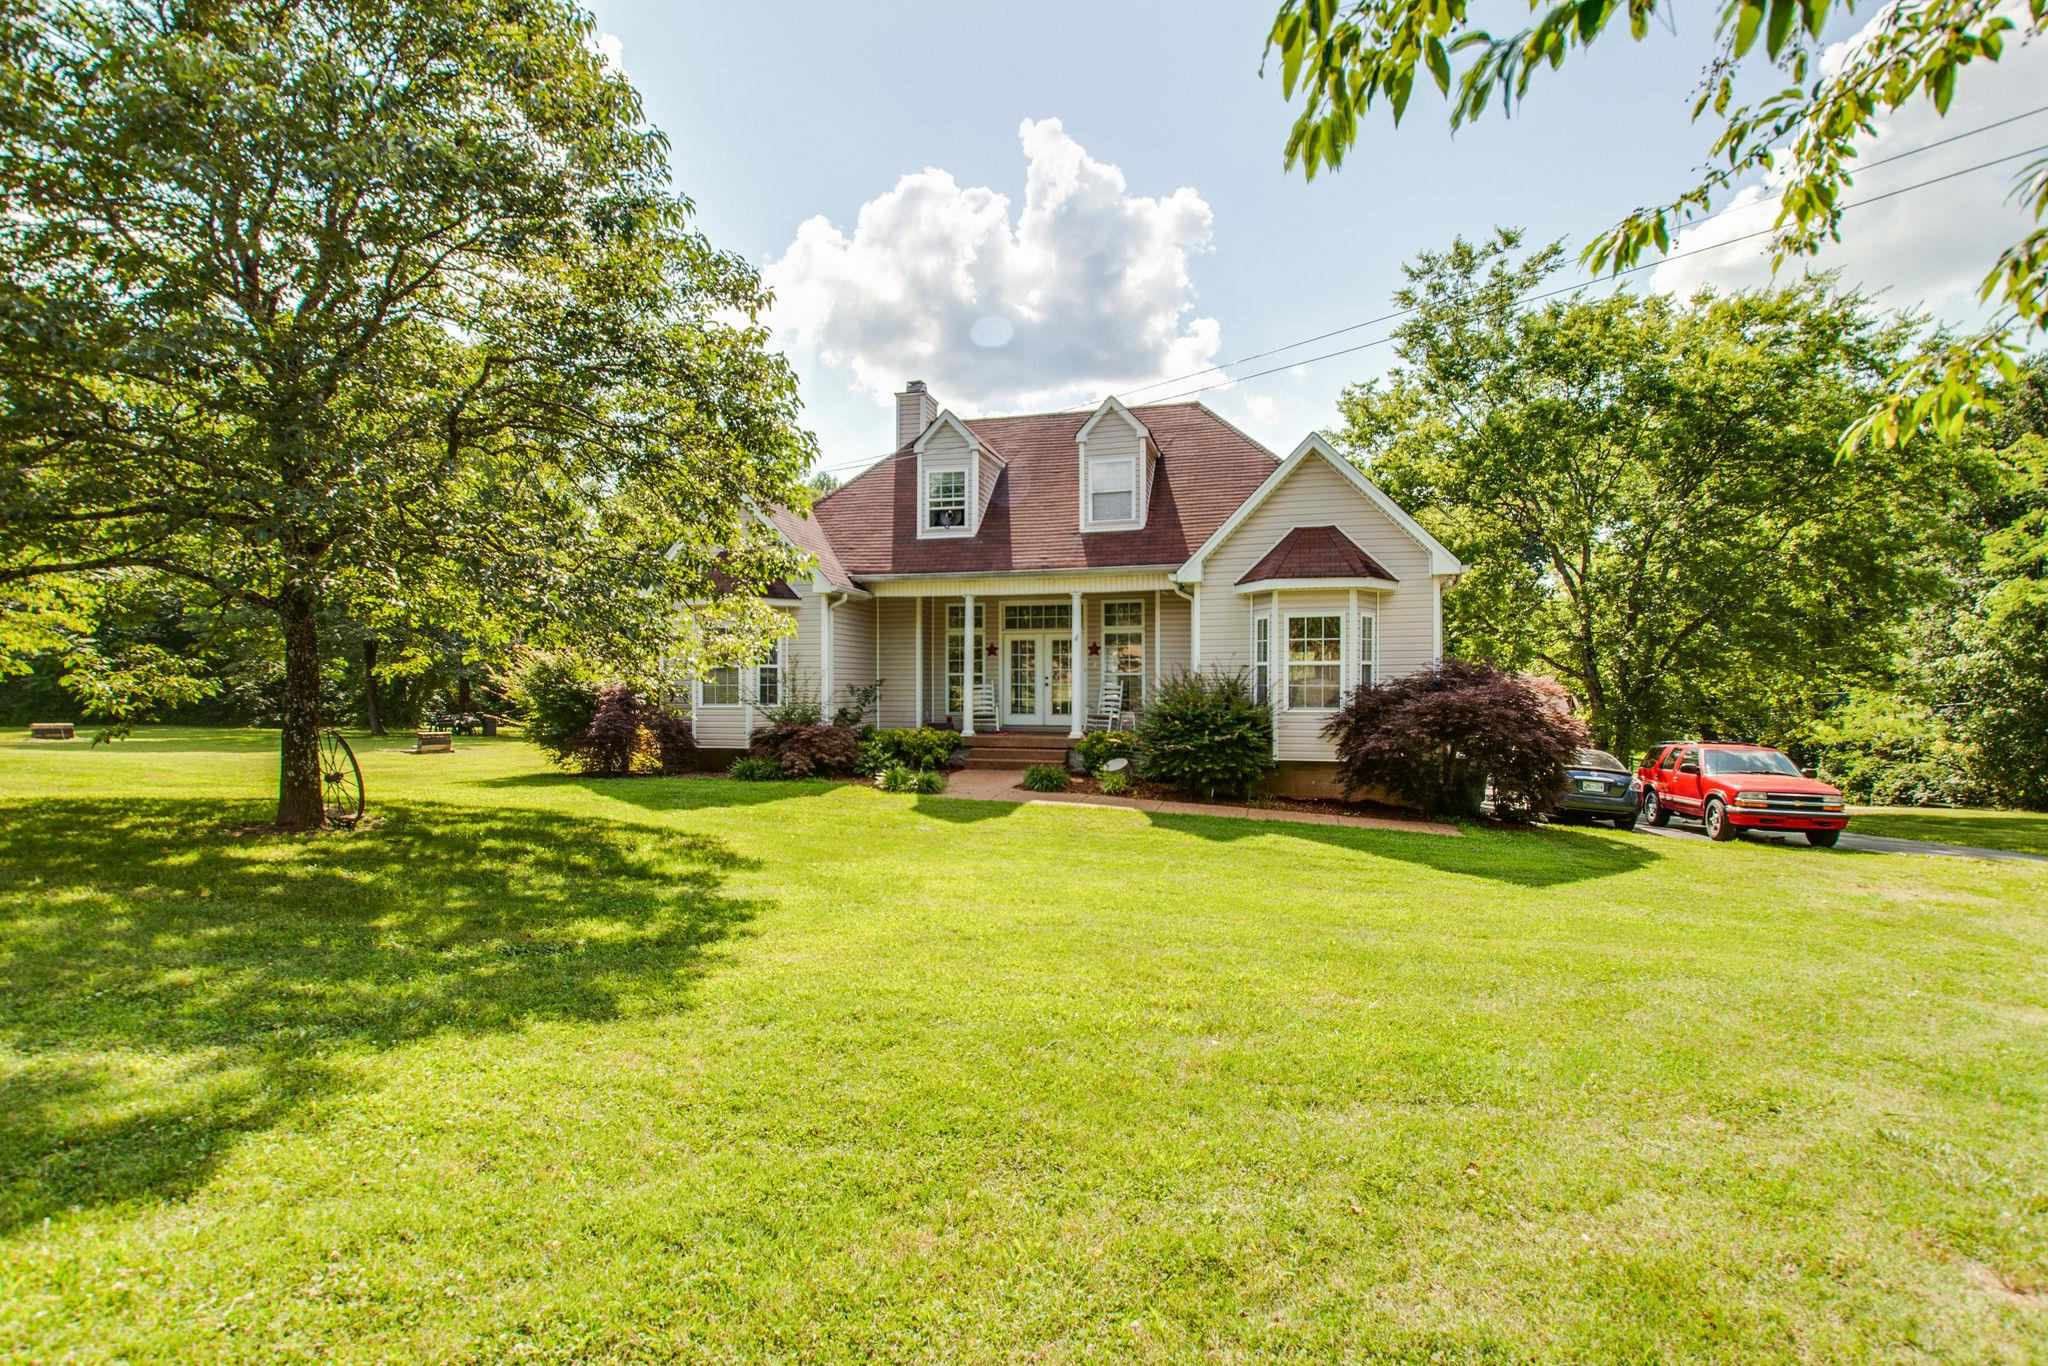 6105 Old Hickory Blvd, Whites Creek, TN 37189 - Whites Creek, TN real estate listing